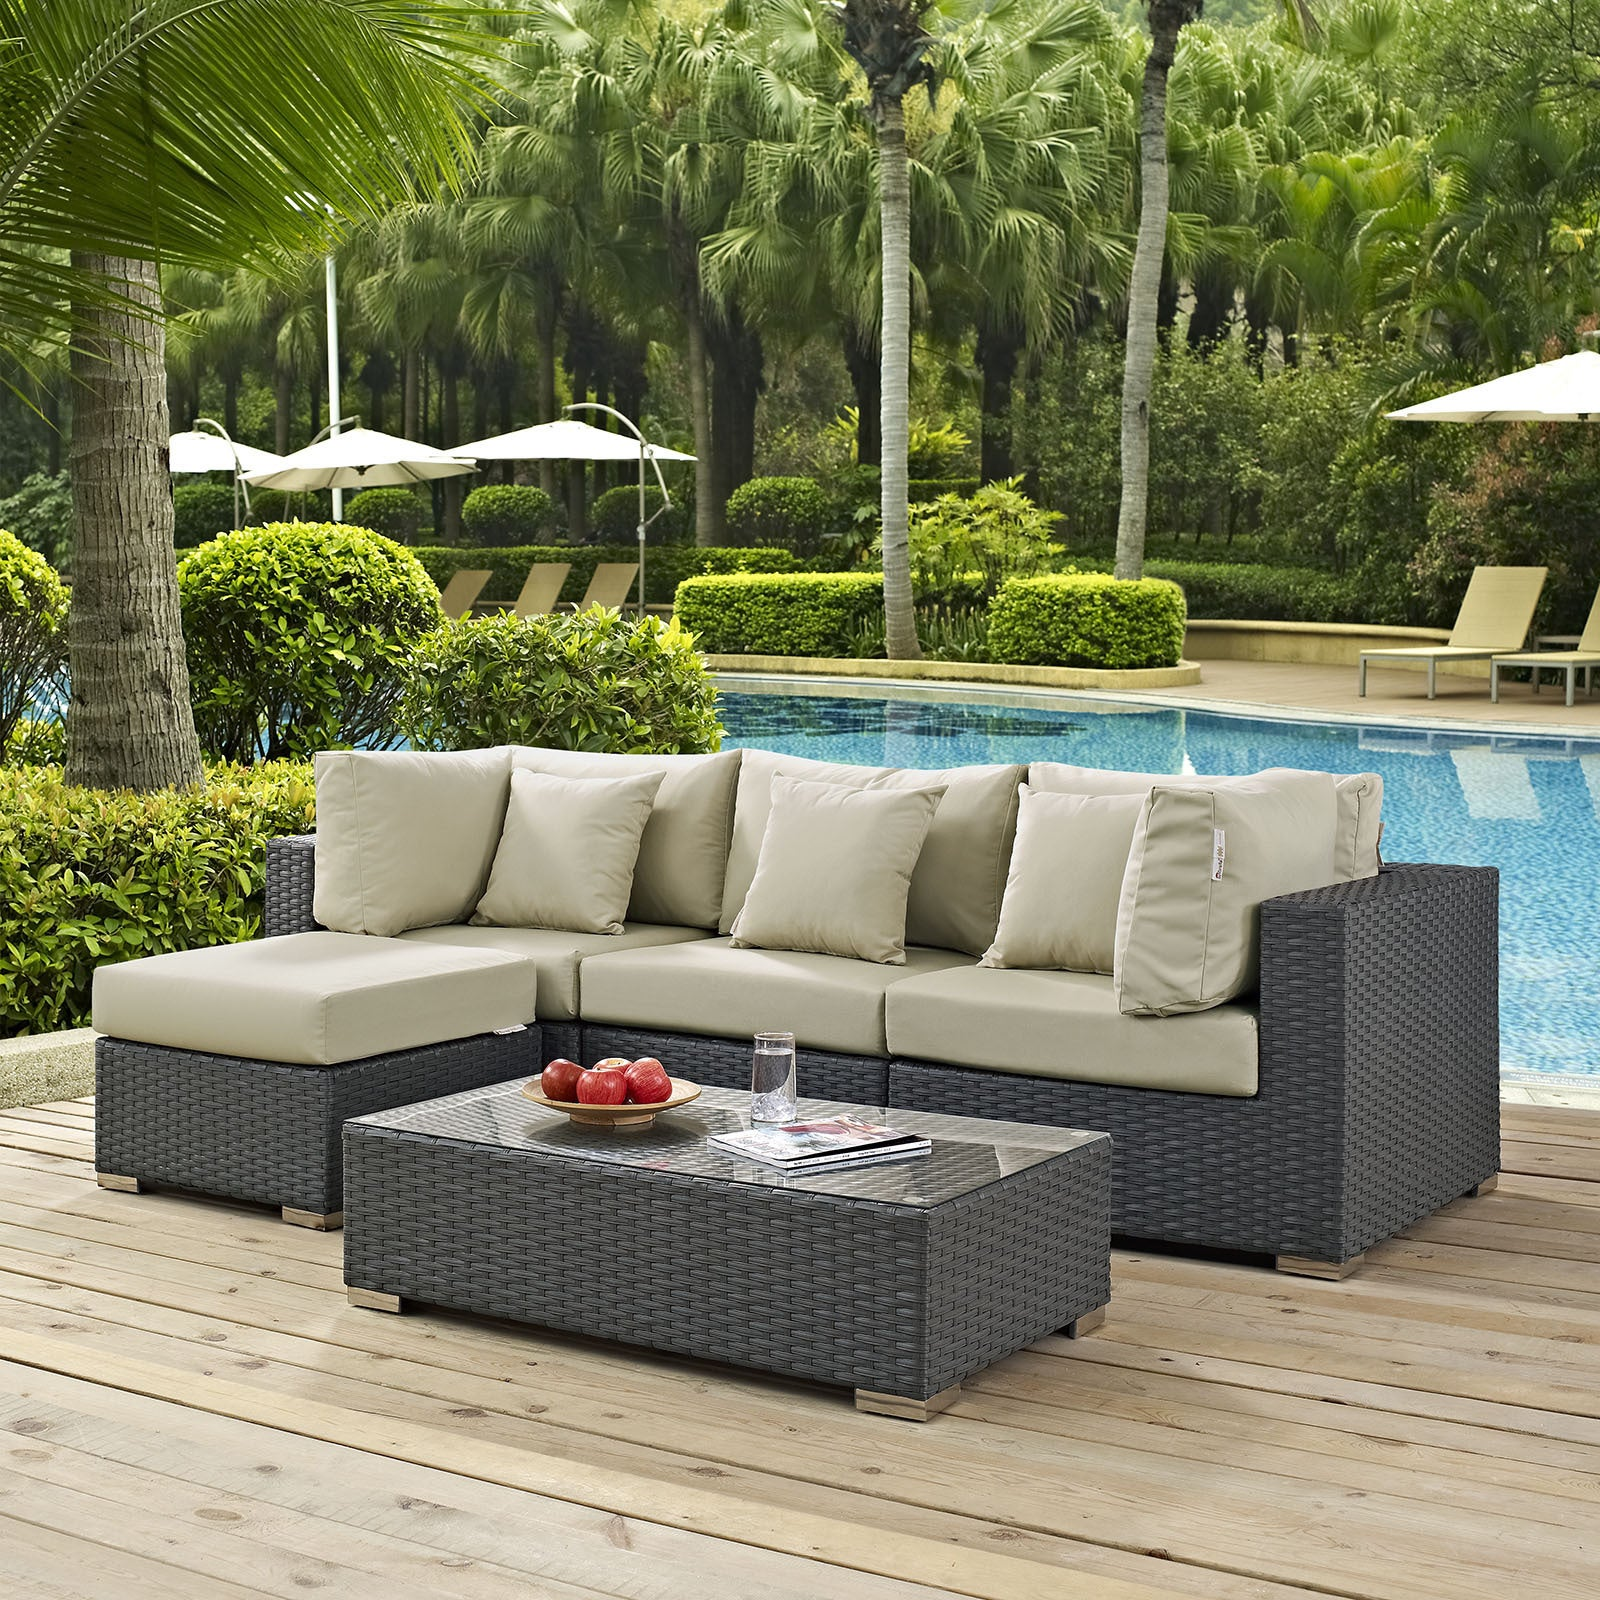 Patio furniture find great outdoor seating dining deals shopping at overstock ca